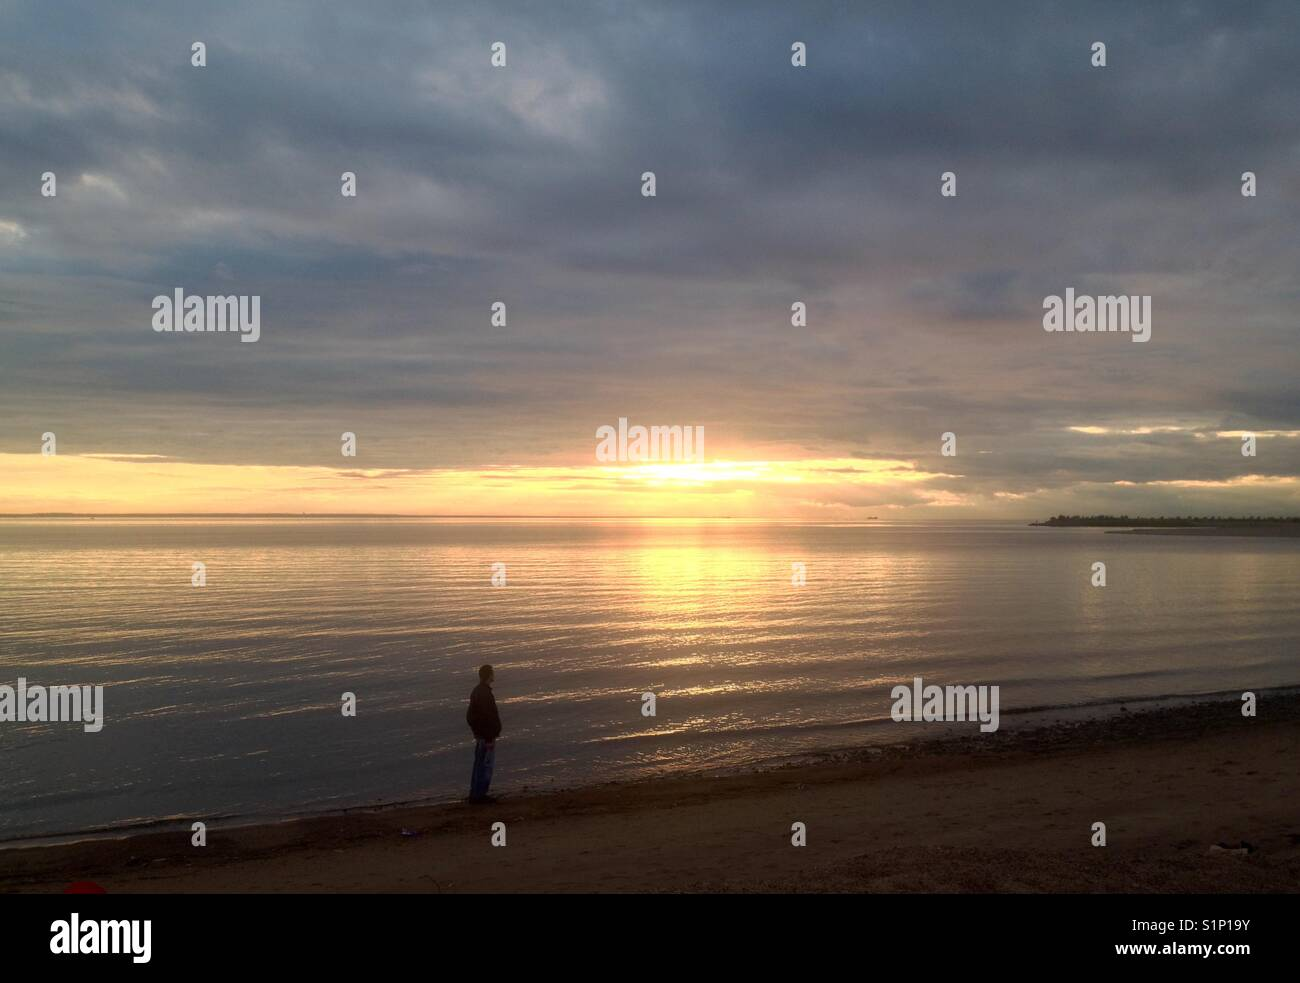 Sunset:silence, contemplation, thoughtlessness - Stock Image